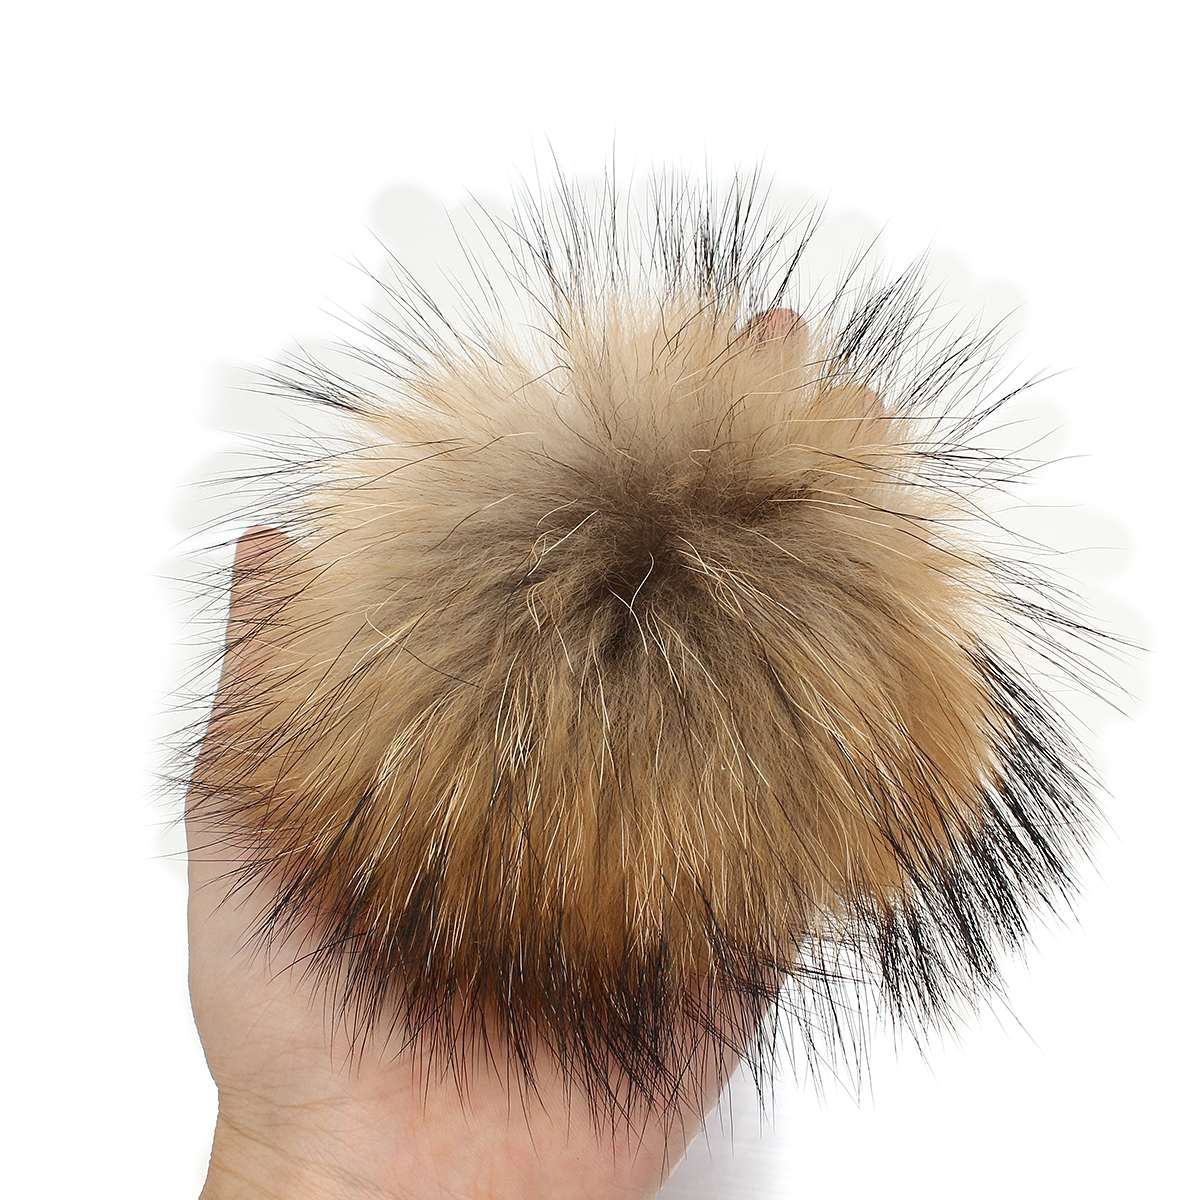 cc7bb59d2 New 10/12cm Faux Fur Raccoon Pompoms Bobble With Press Stud Handmade Pom  For Beanies Knitted Hat, Furry Ball For Men Women Cap